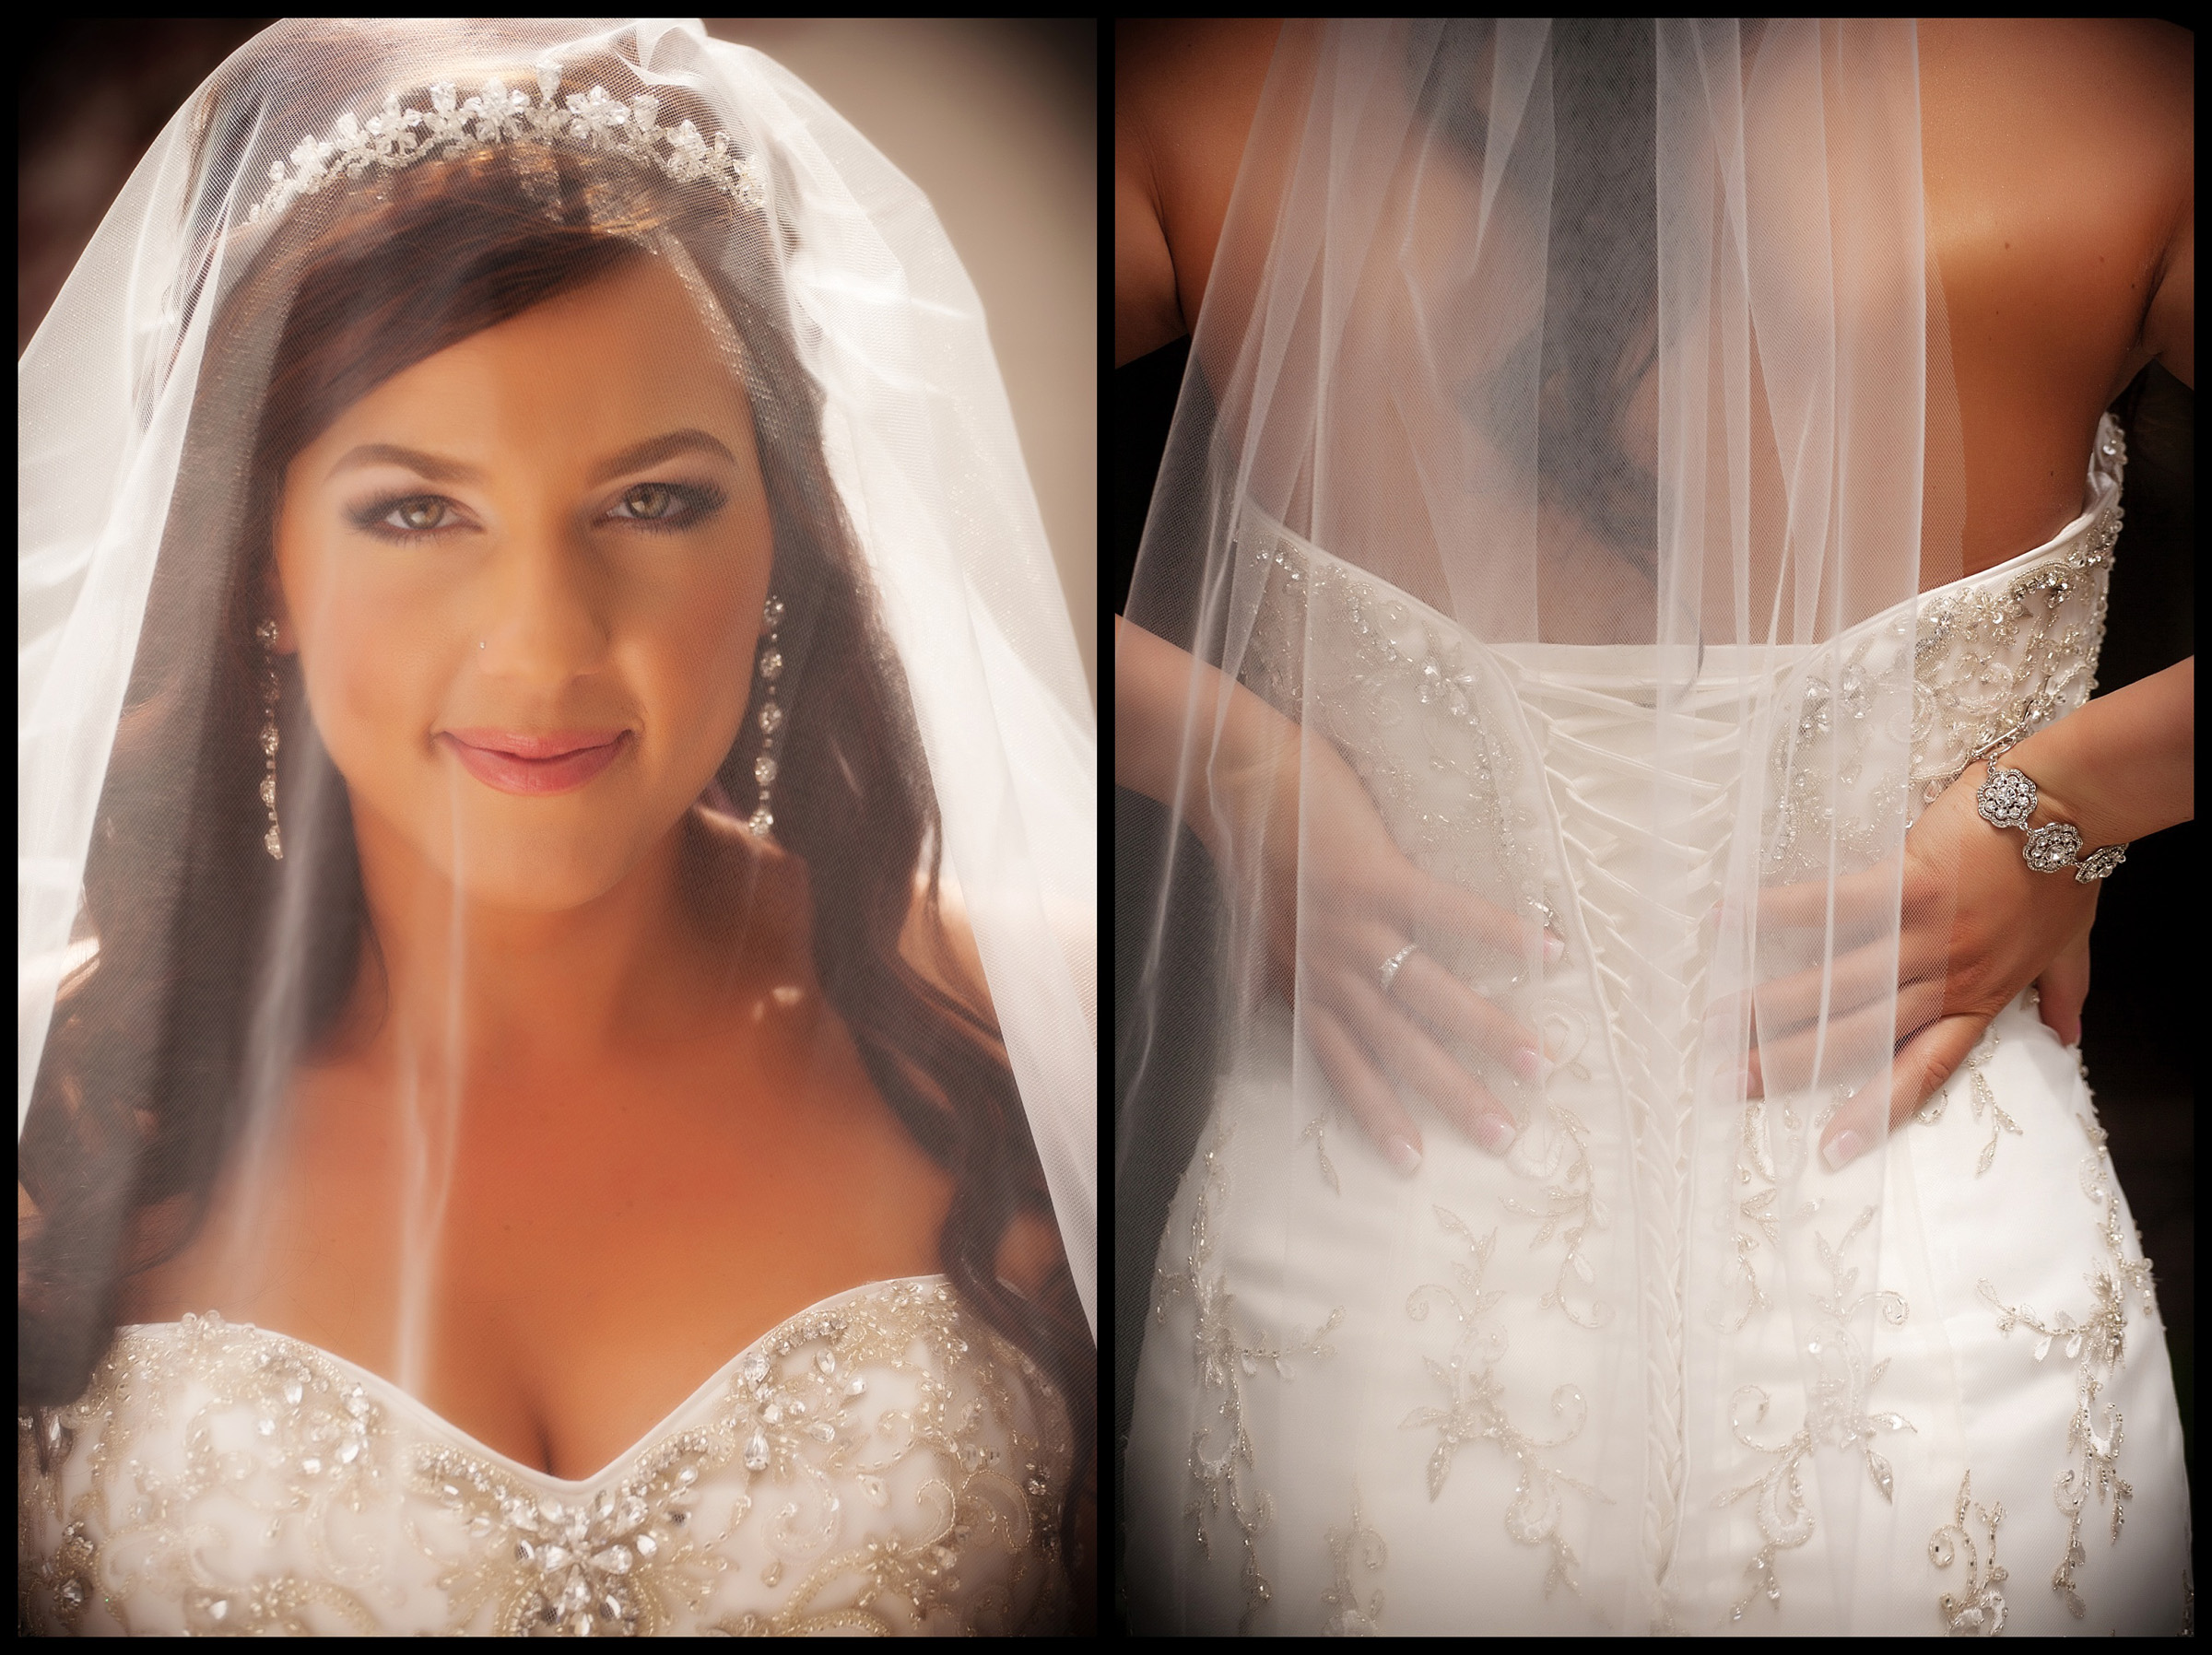 Bride portraits - face under veil, and back of dress